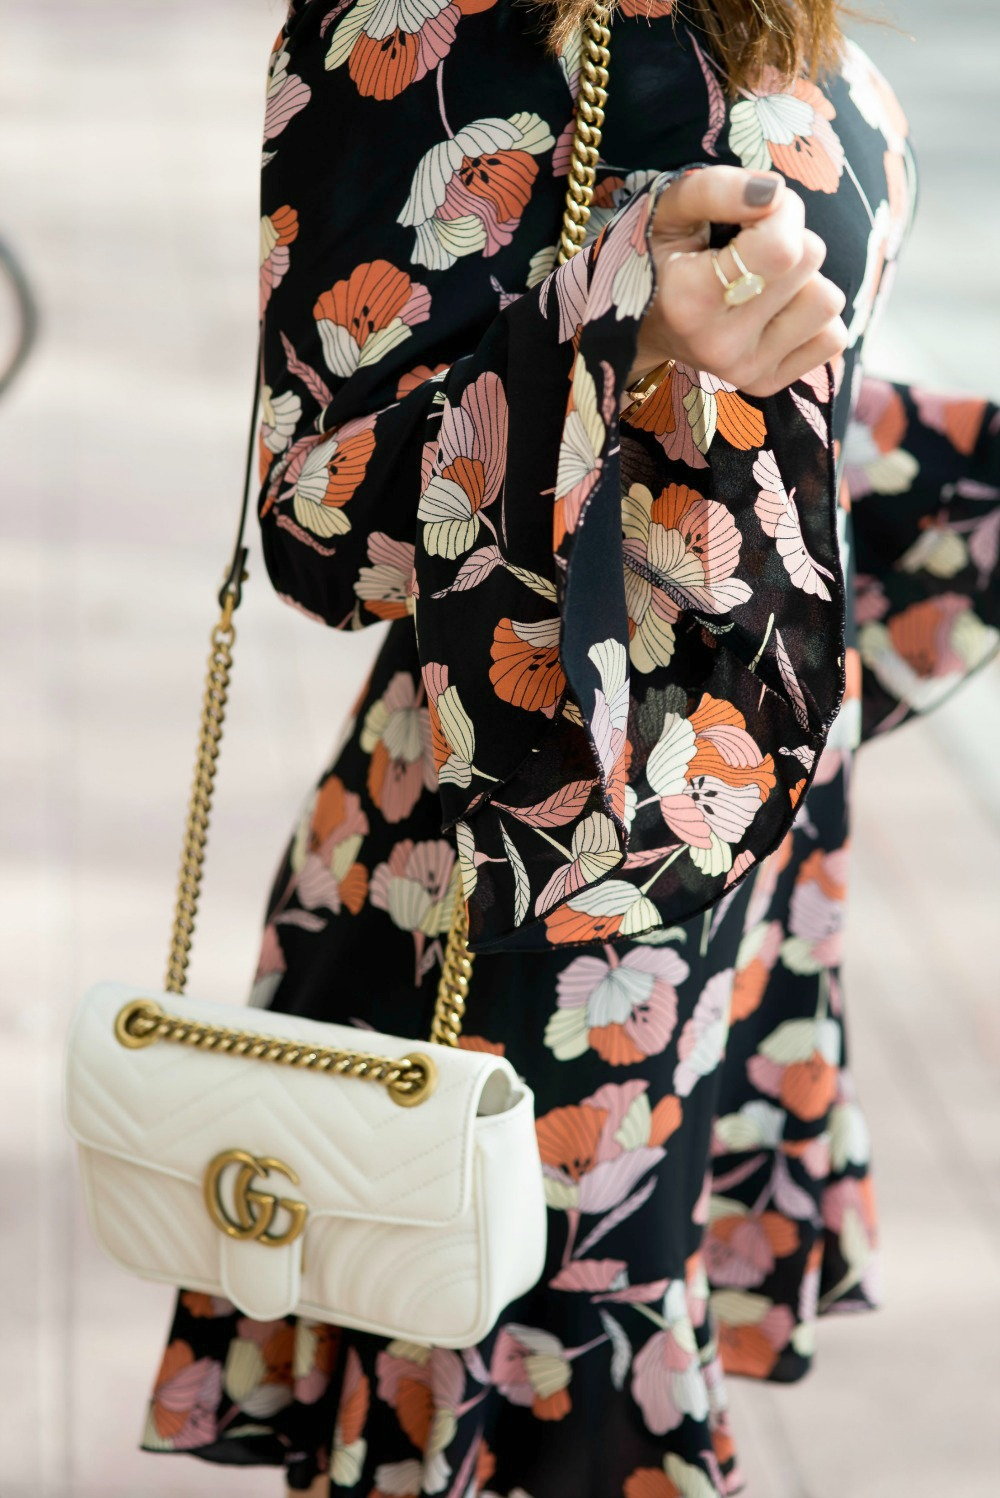 Target Fashion Makes Me Really Happy by popular Florida style blogger The Modern Savvy